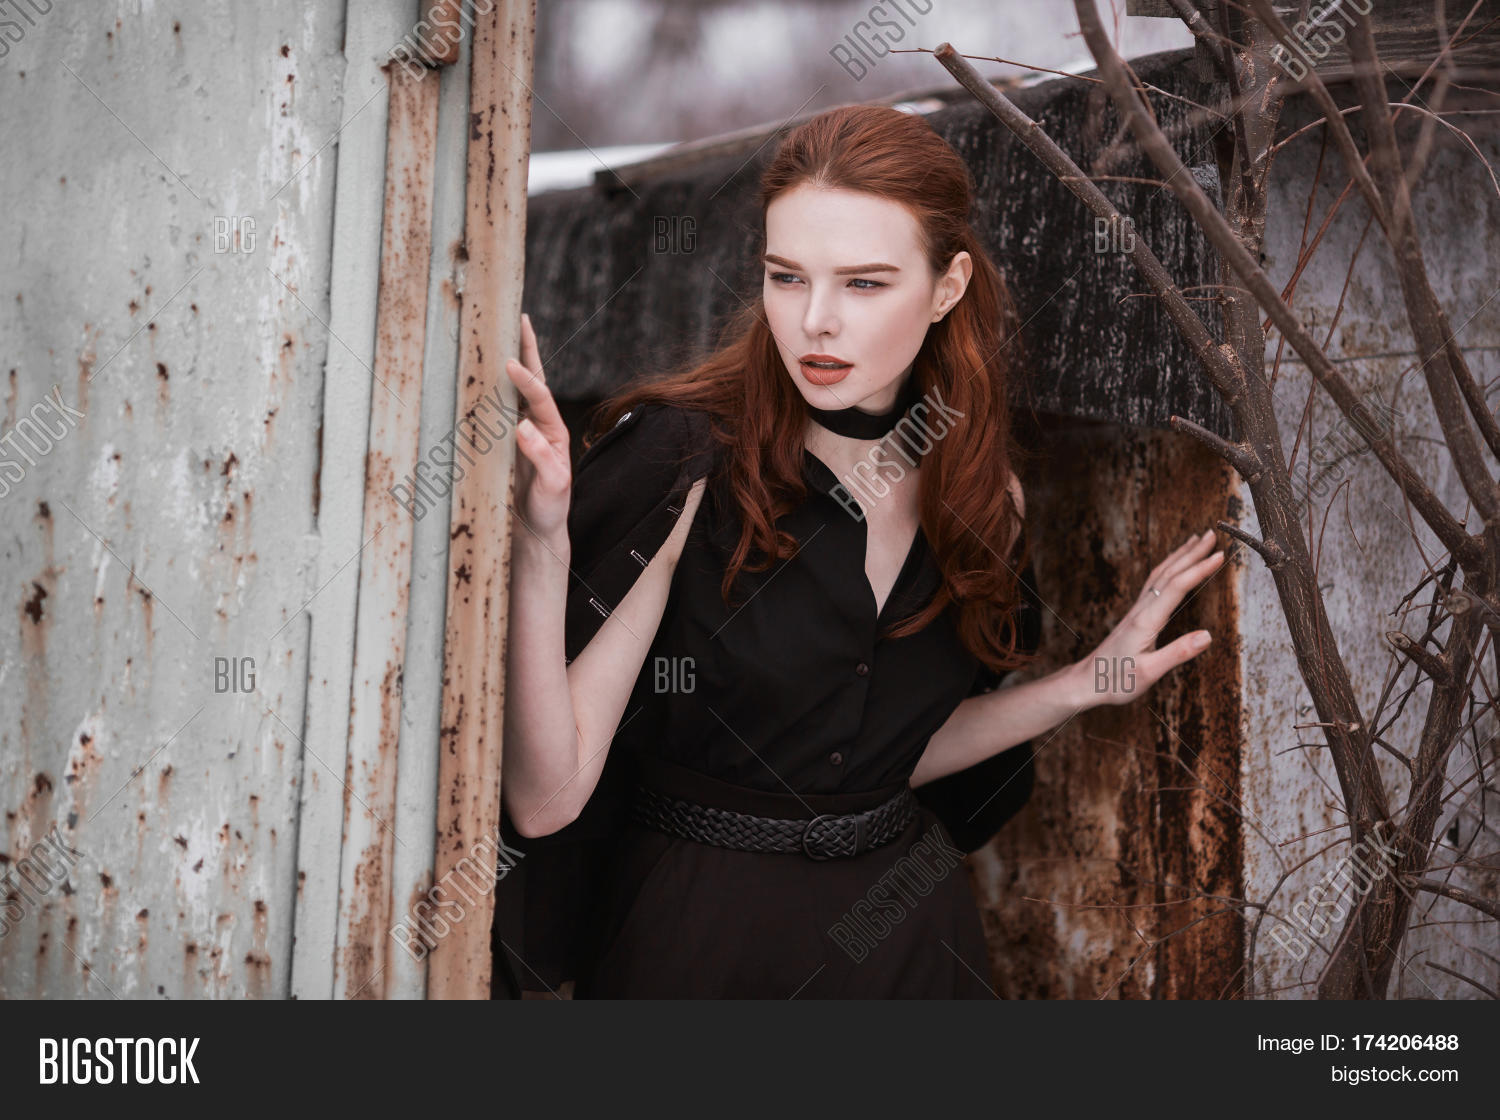 Striking Gothic Girl With Long Red Hair In Black Clothes A Woman